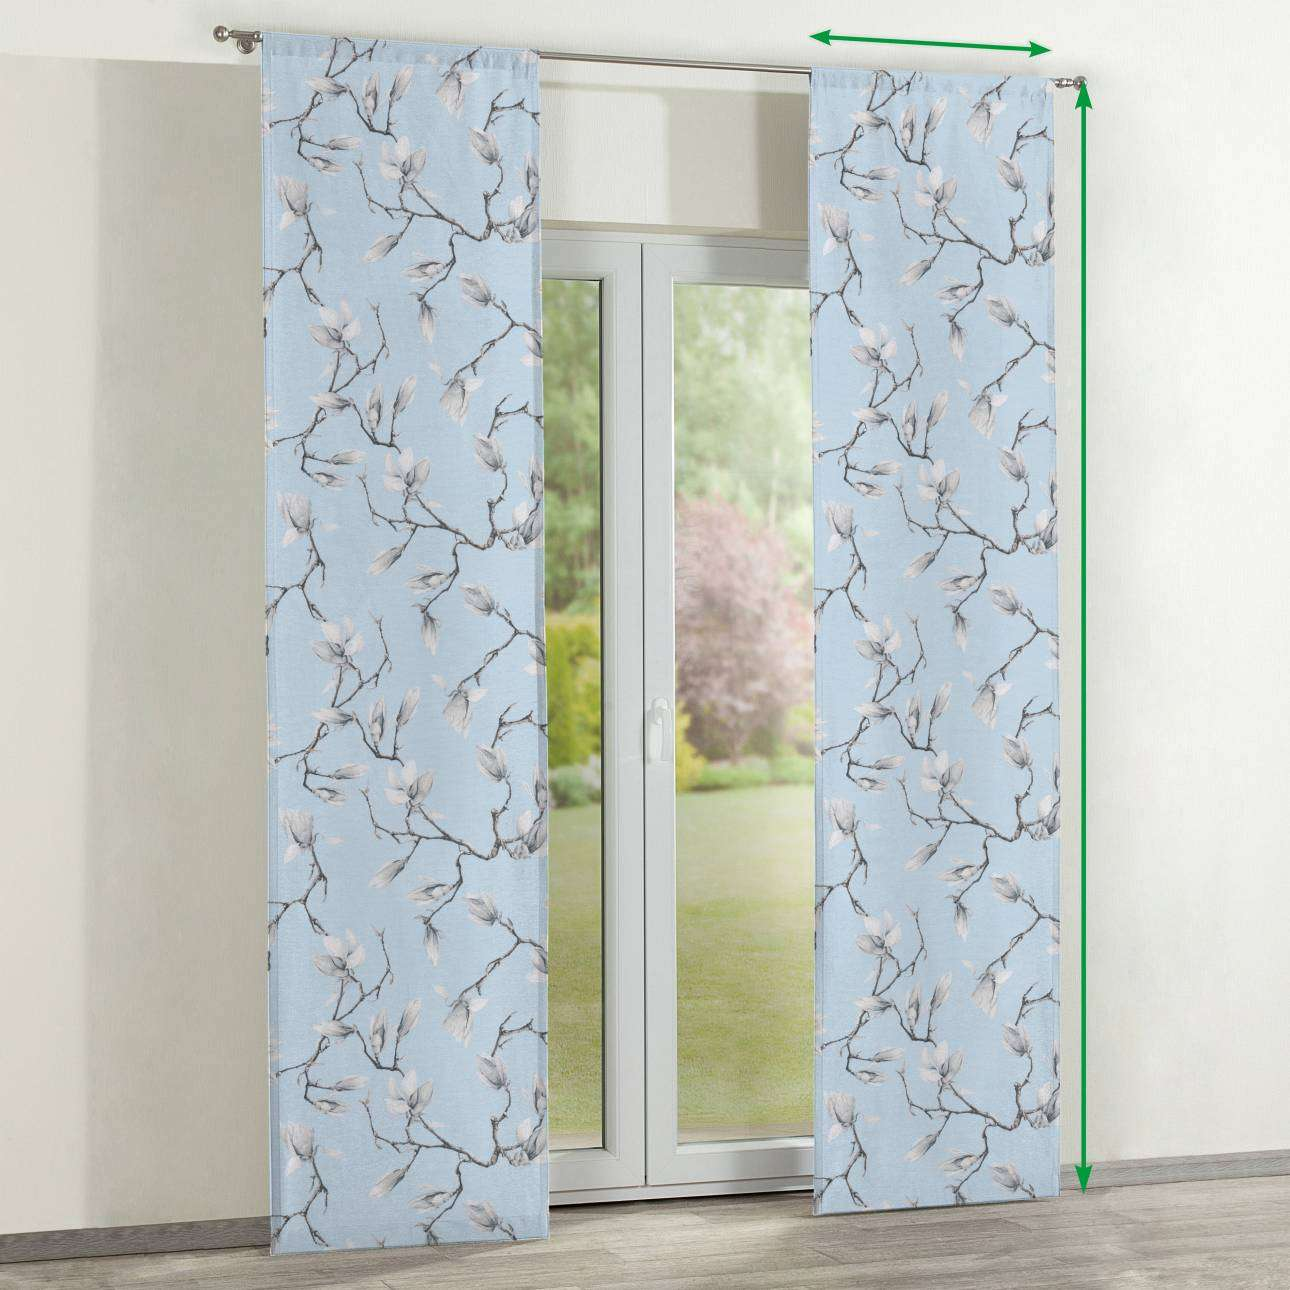 Slot panel curtains – Set of 2 in collection Flowers, fabric: 311-14